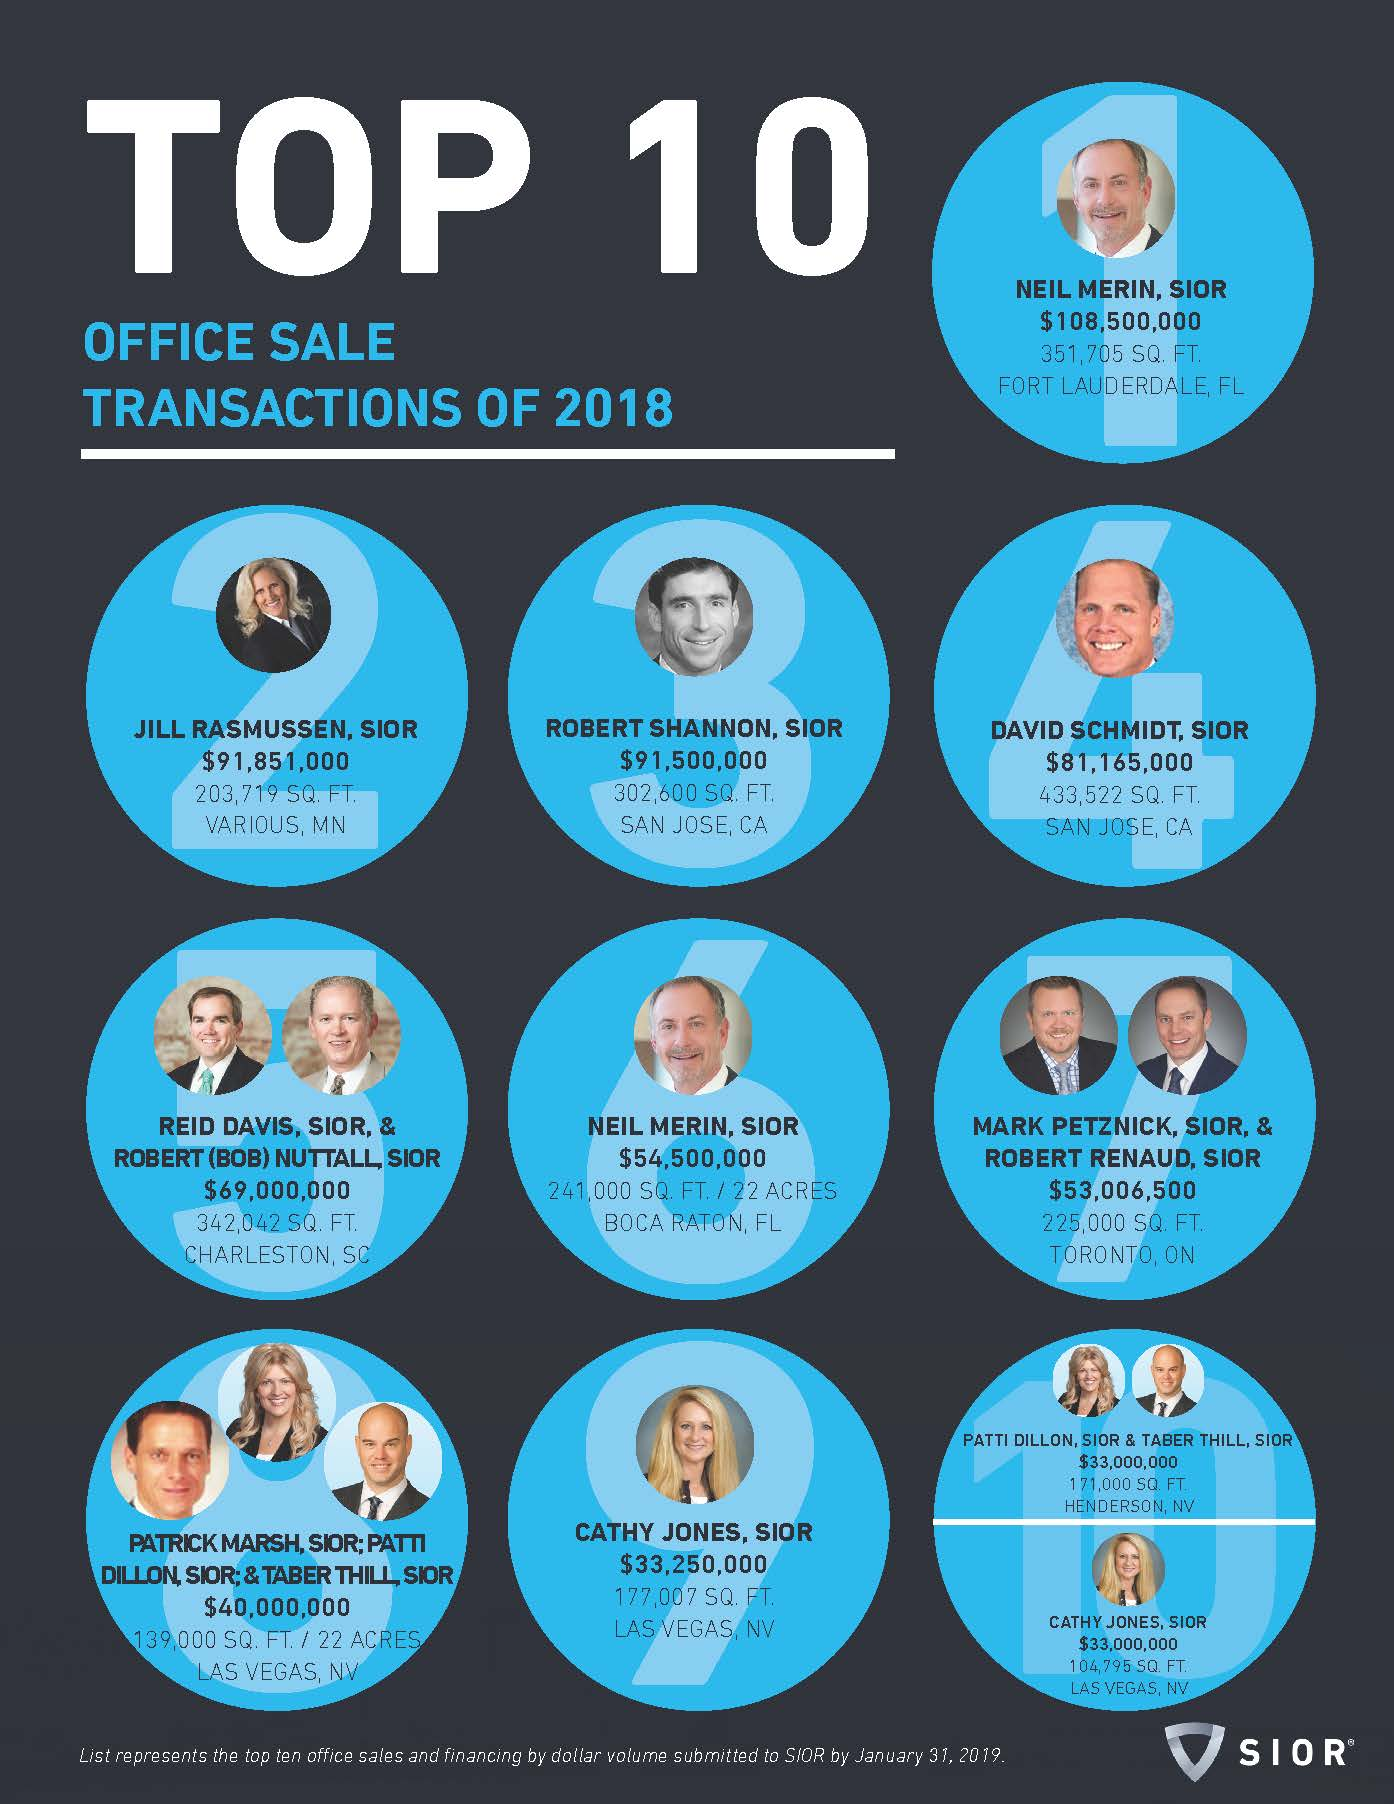 Top 10 Office Sales of 2018